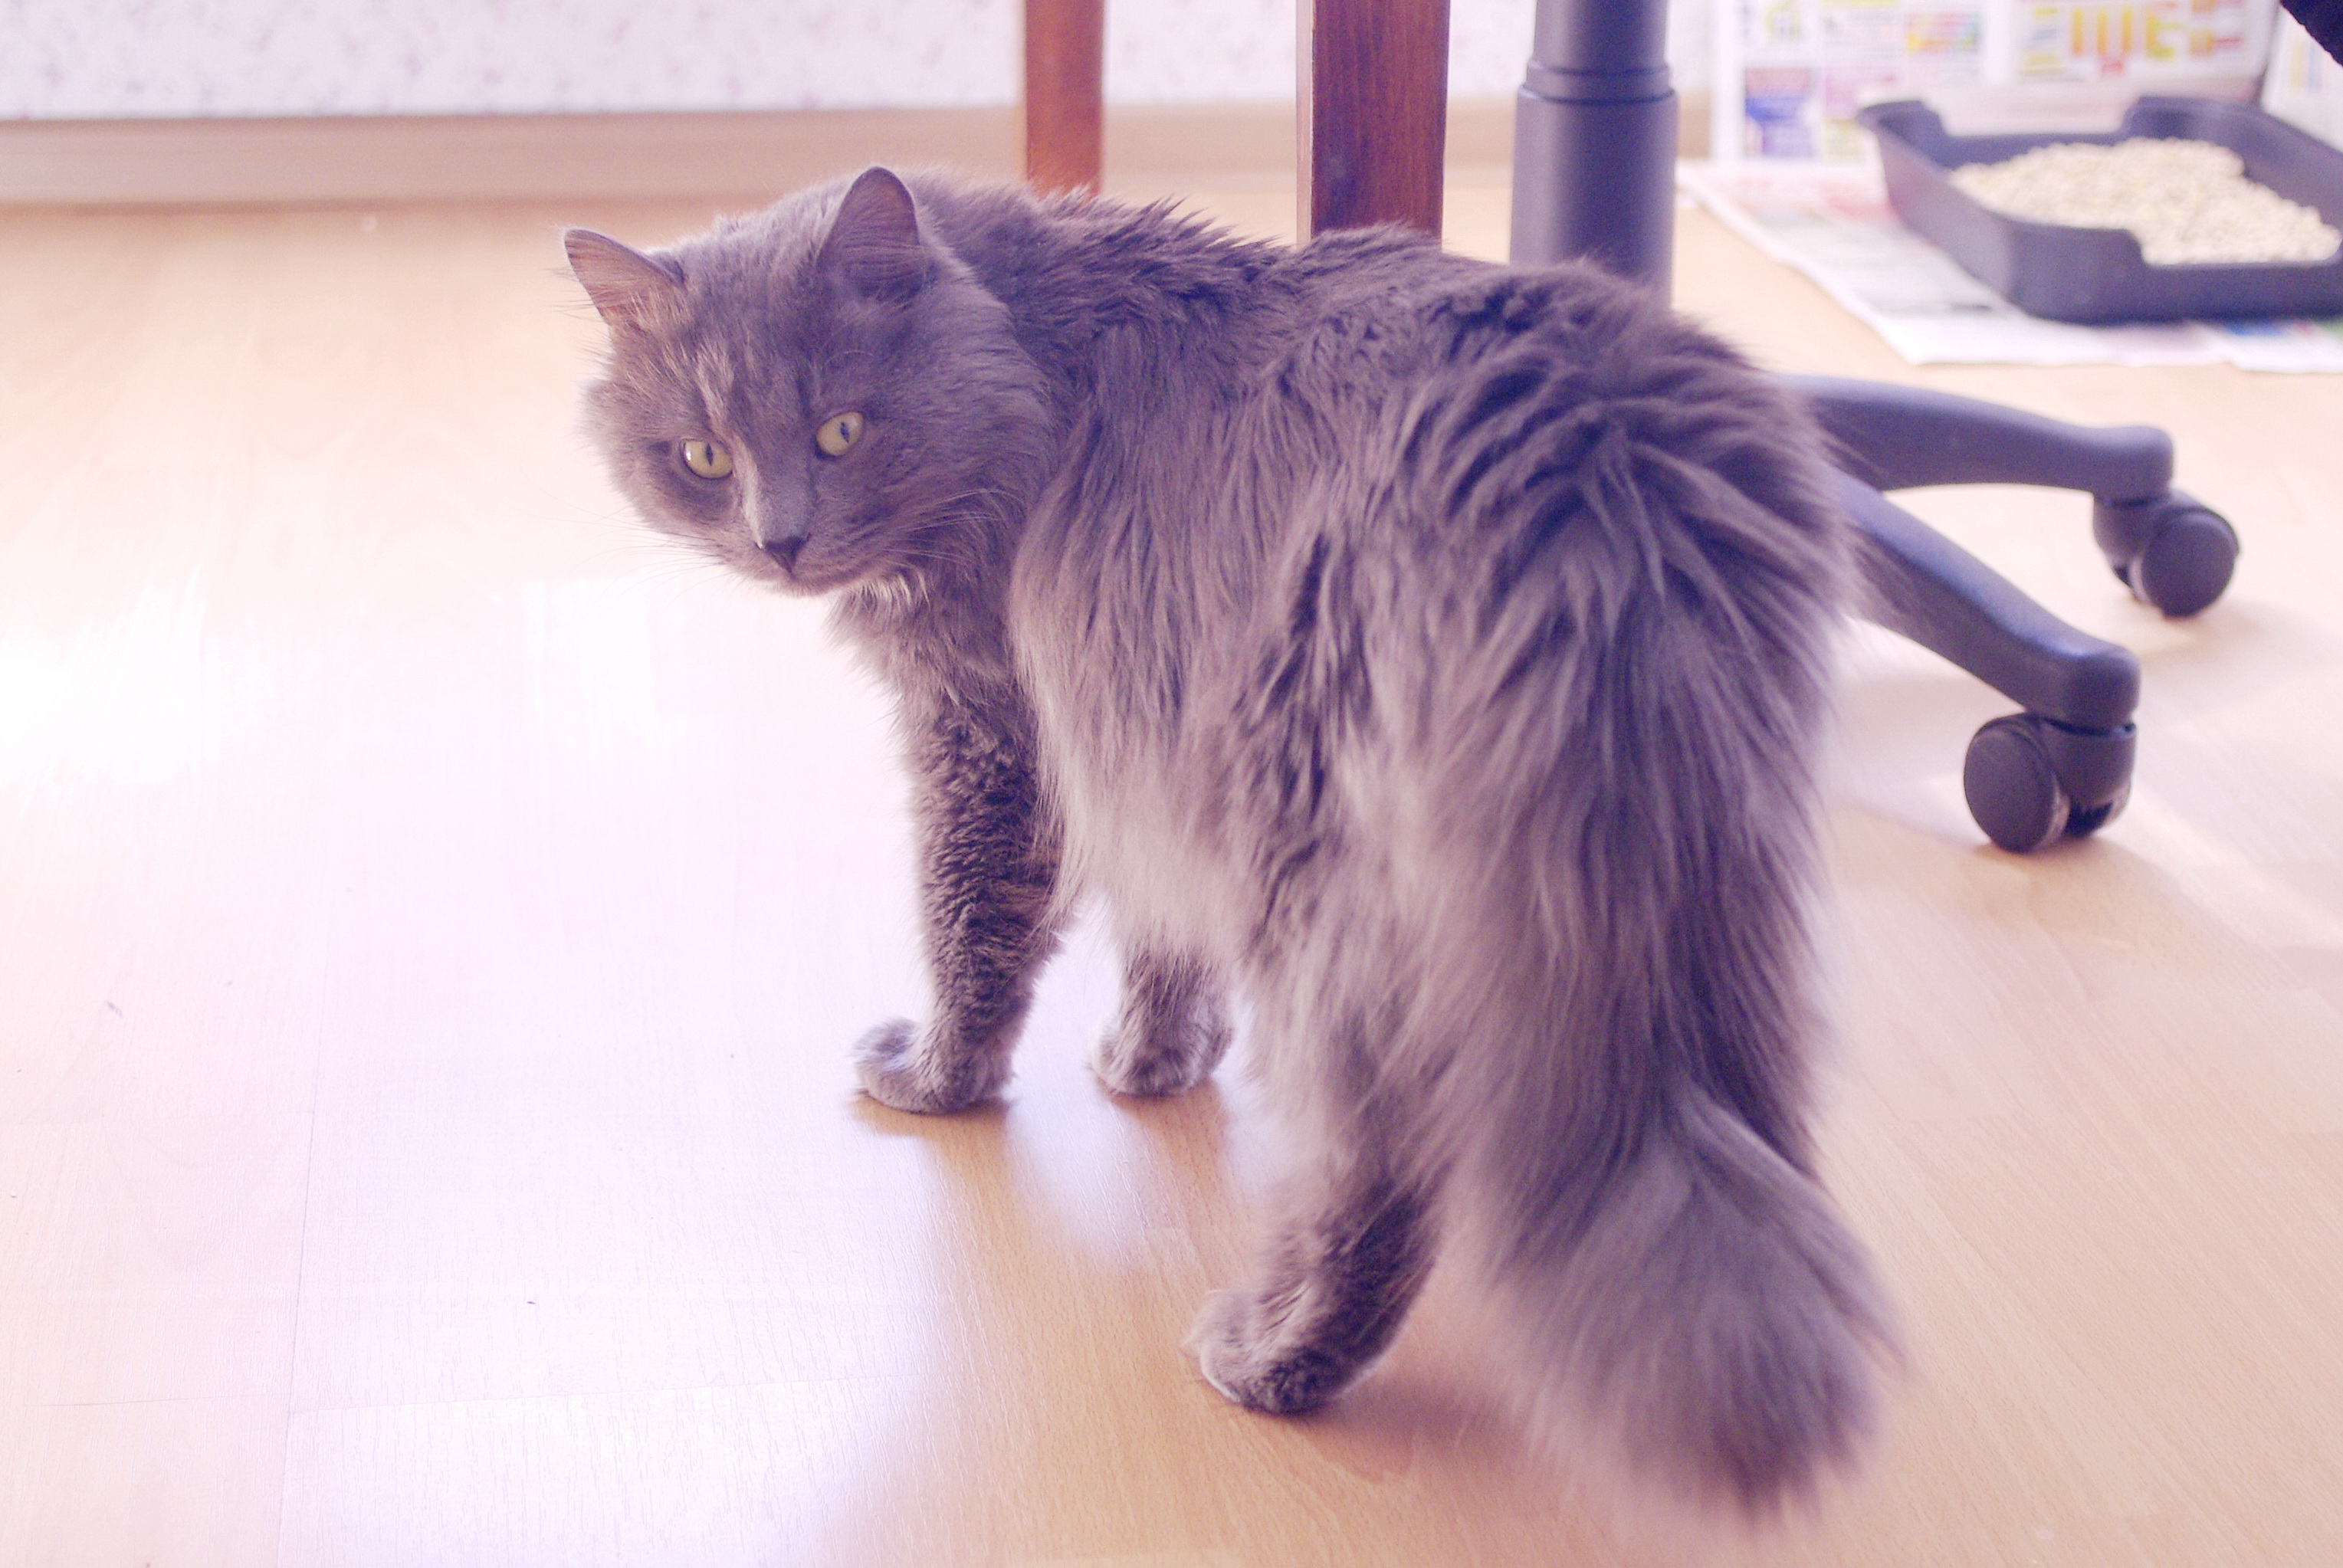 Maine coon cat on the floor, Animal, Cat, Gray, Home, HQ Photo